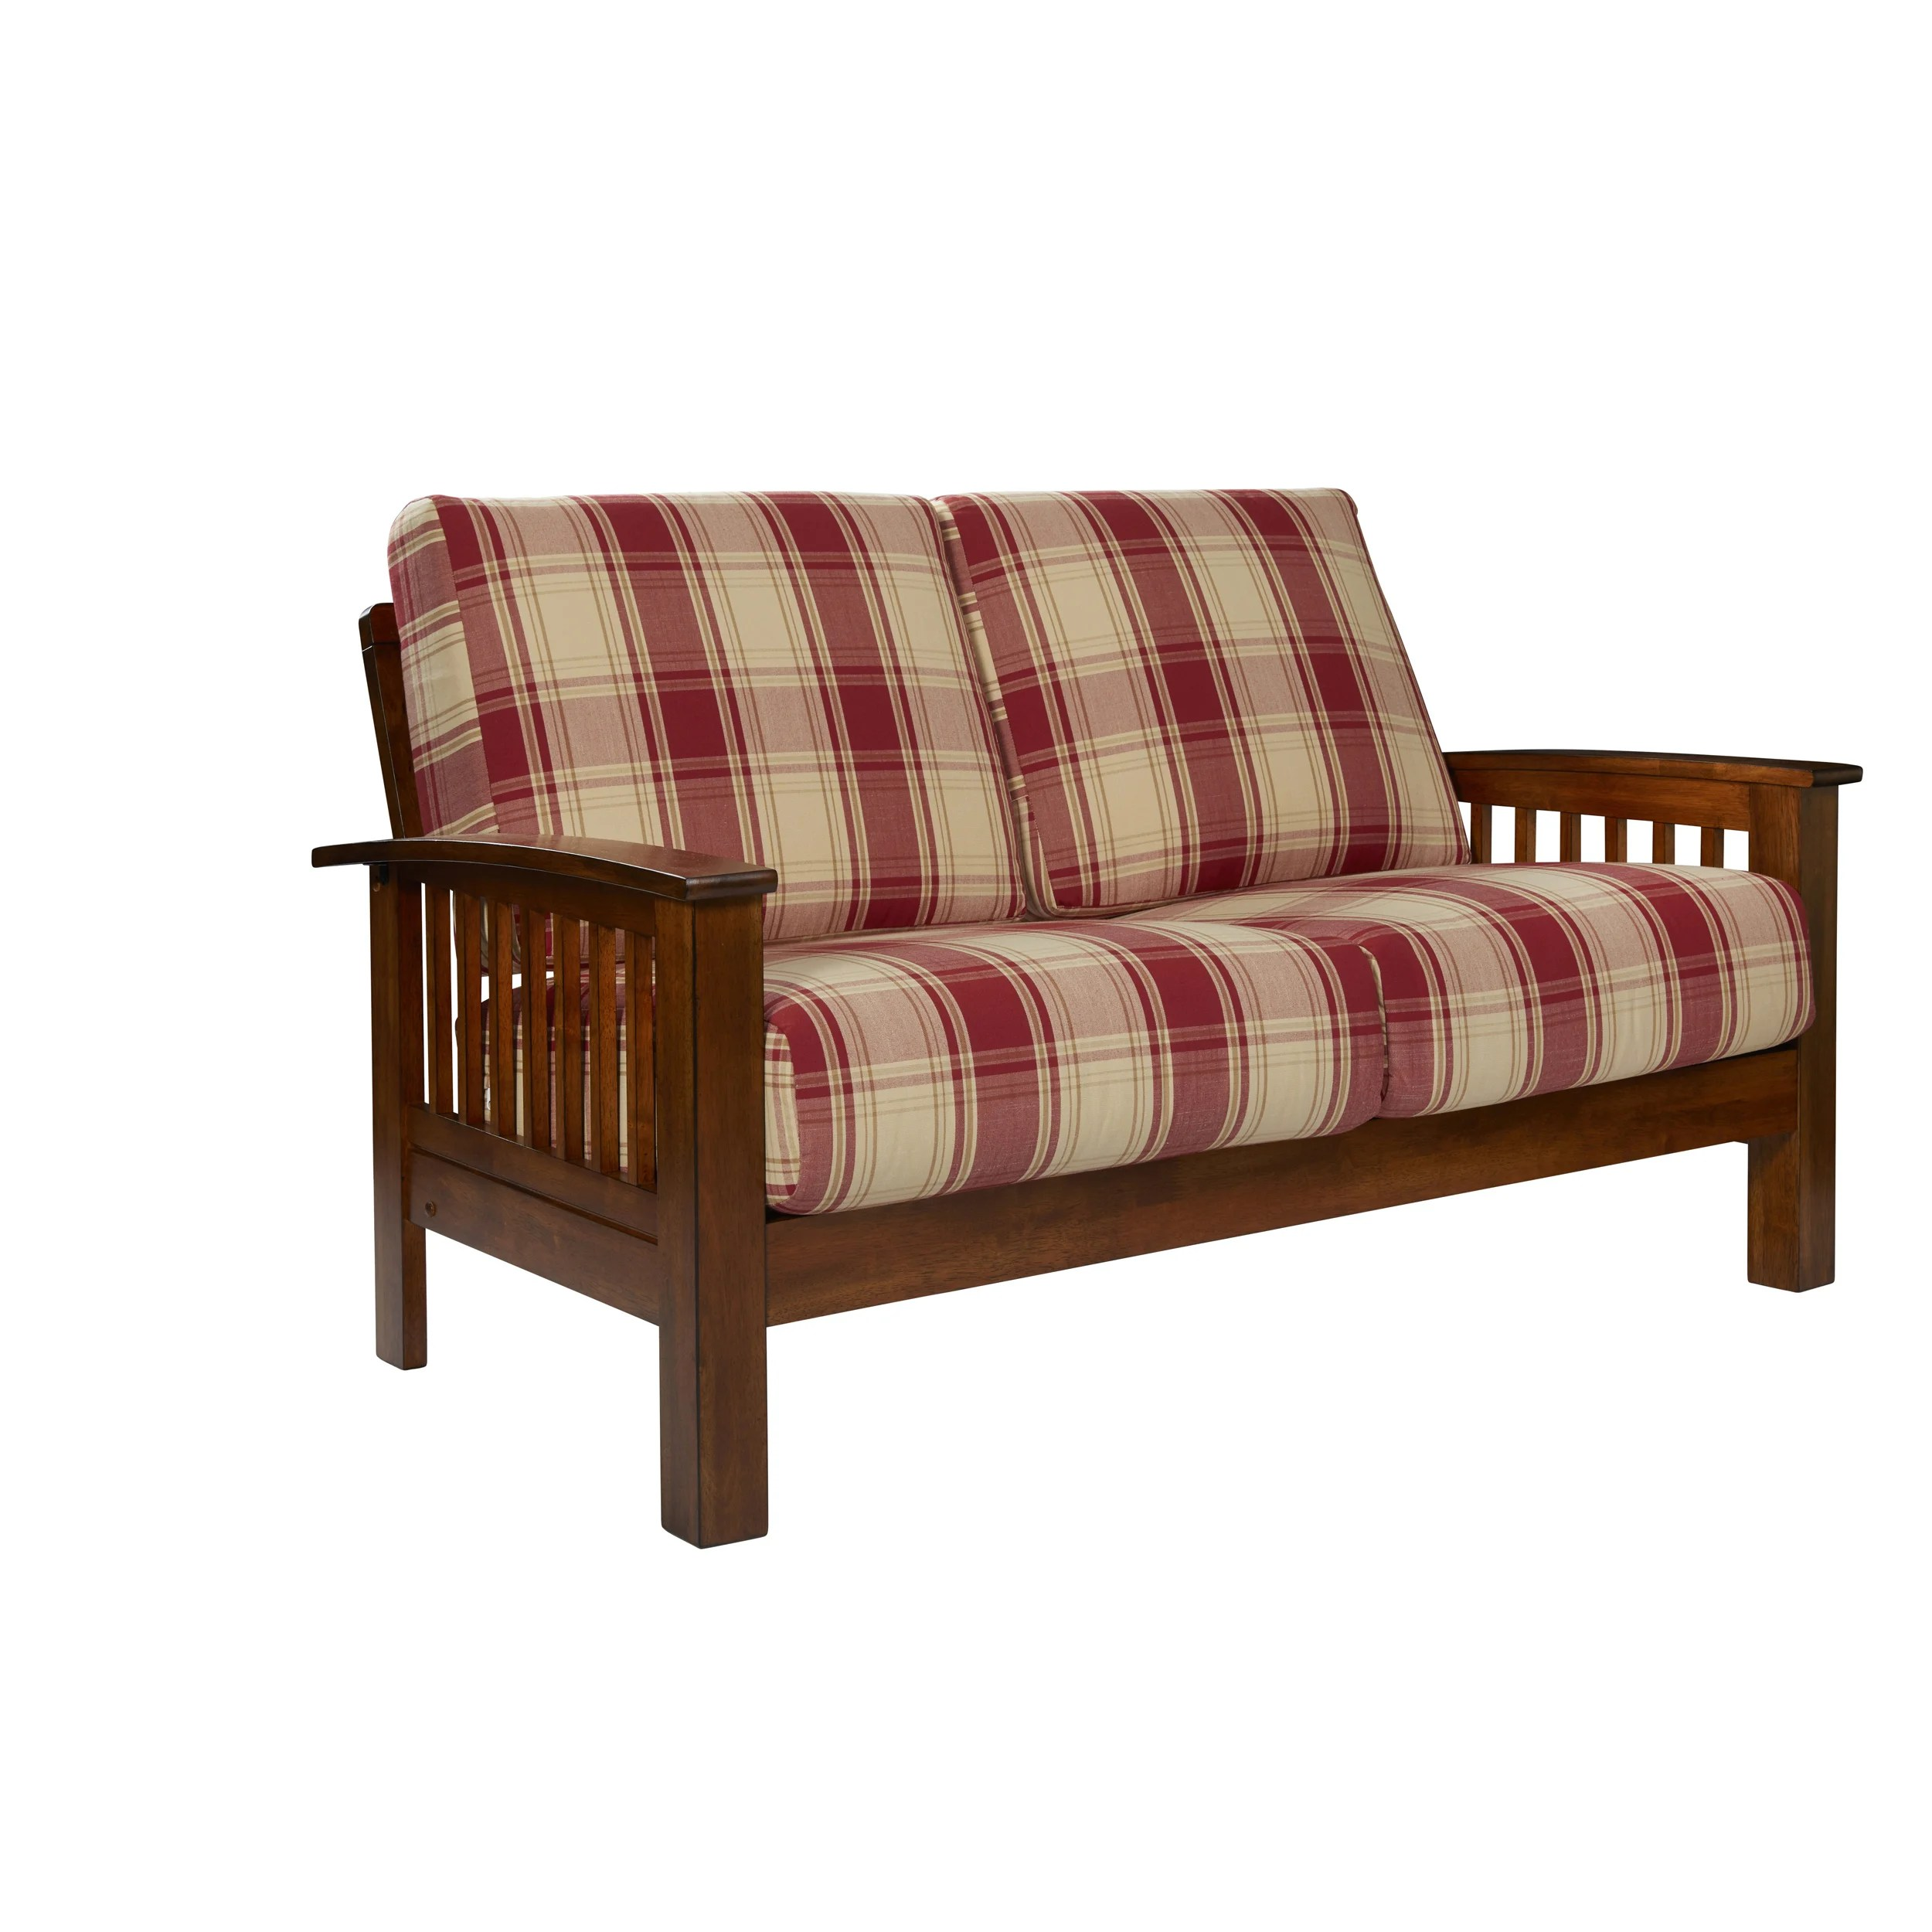 The Gray Barn Mercy Red Plaid Mission Style Loveseat With Exposed Wood Frame On Sale Overstock 23123038